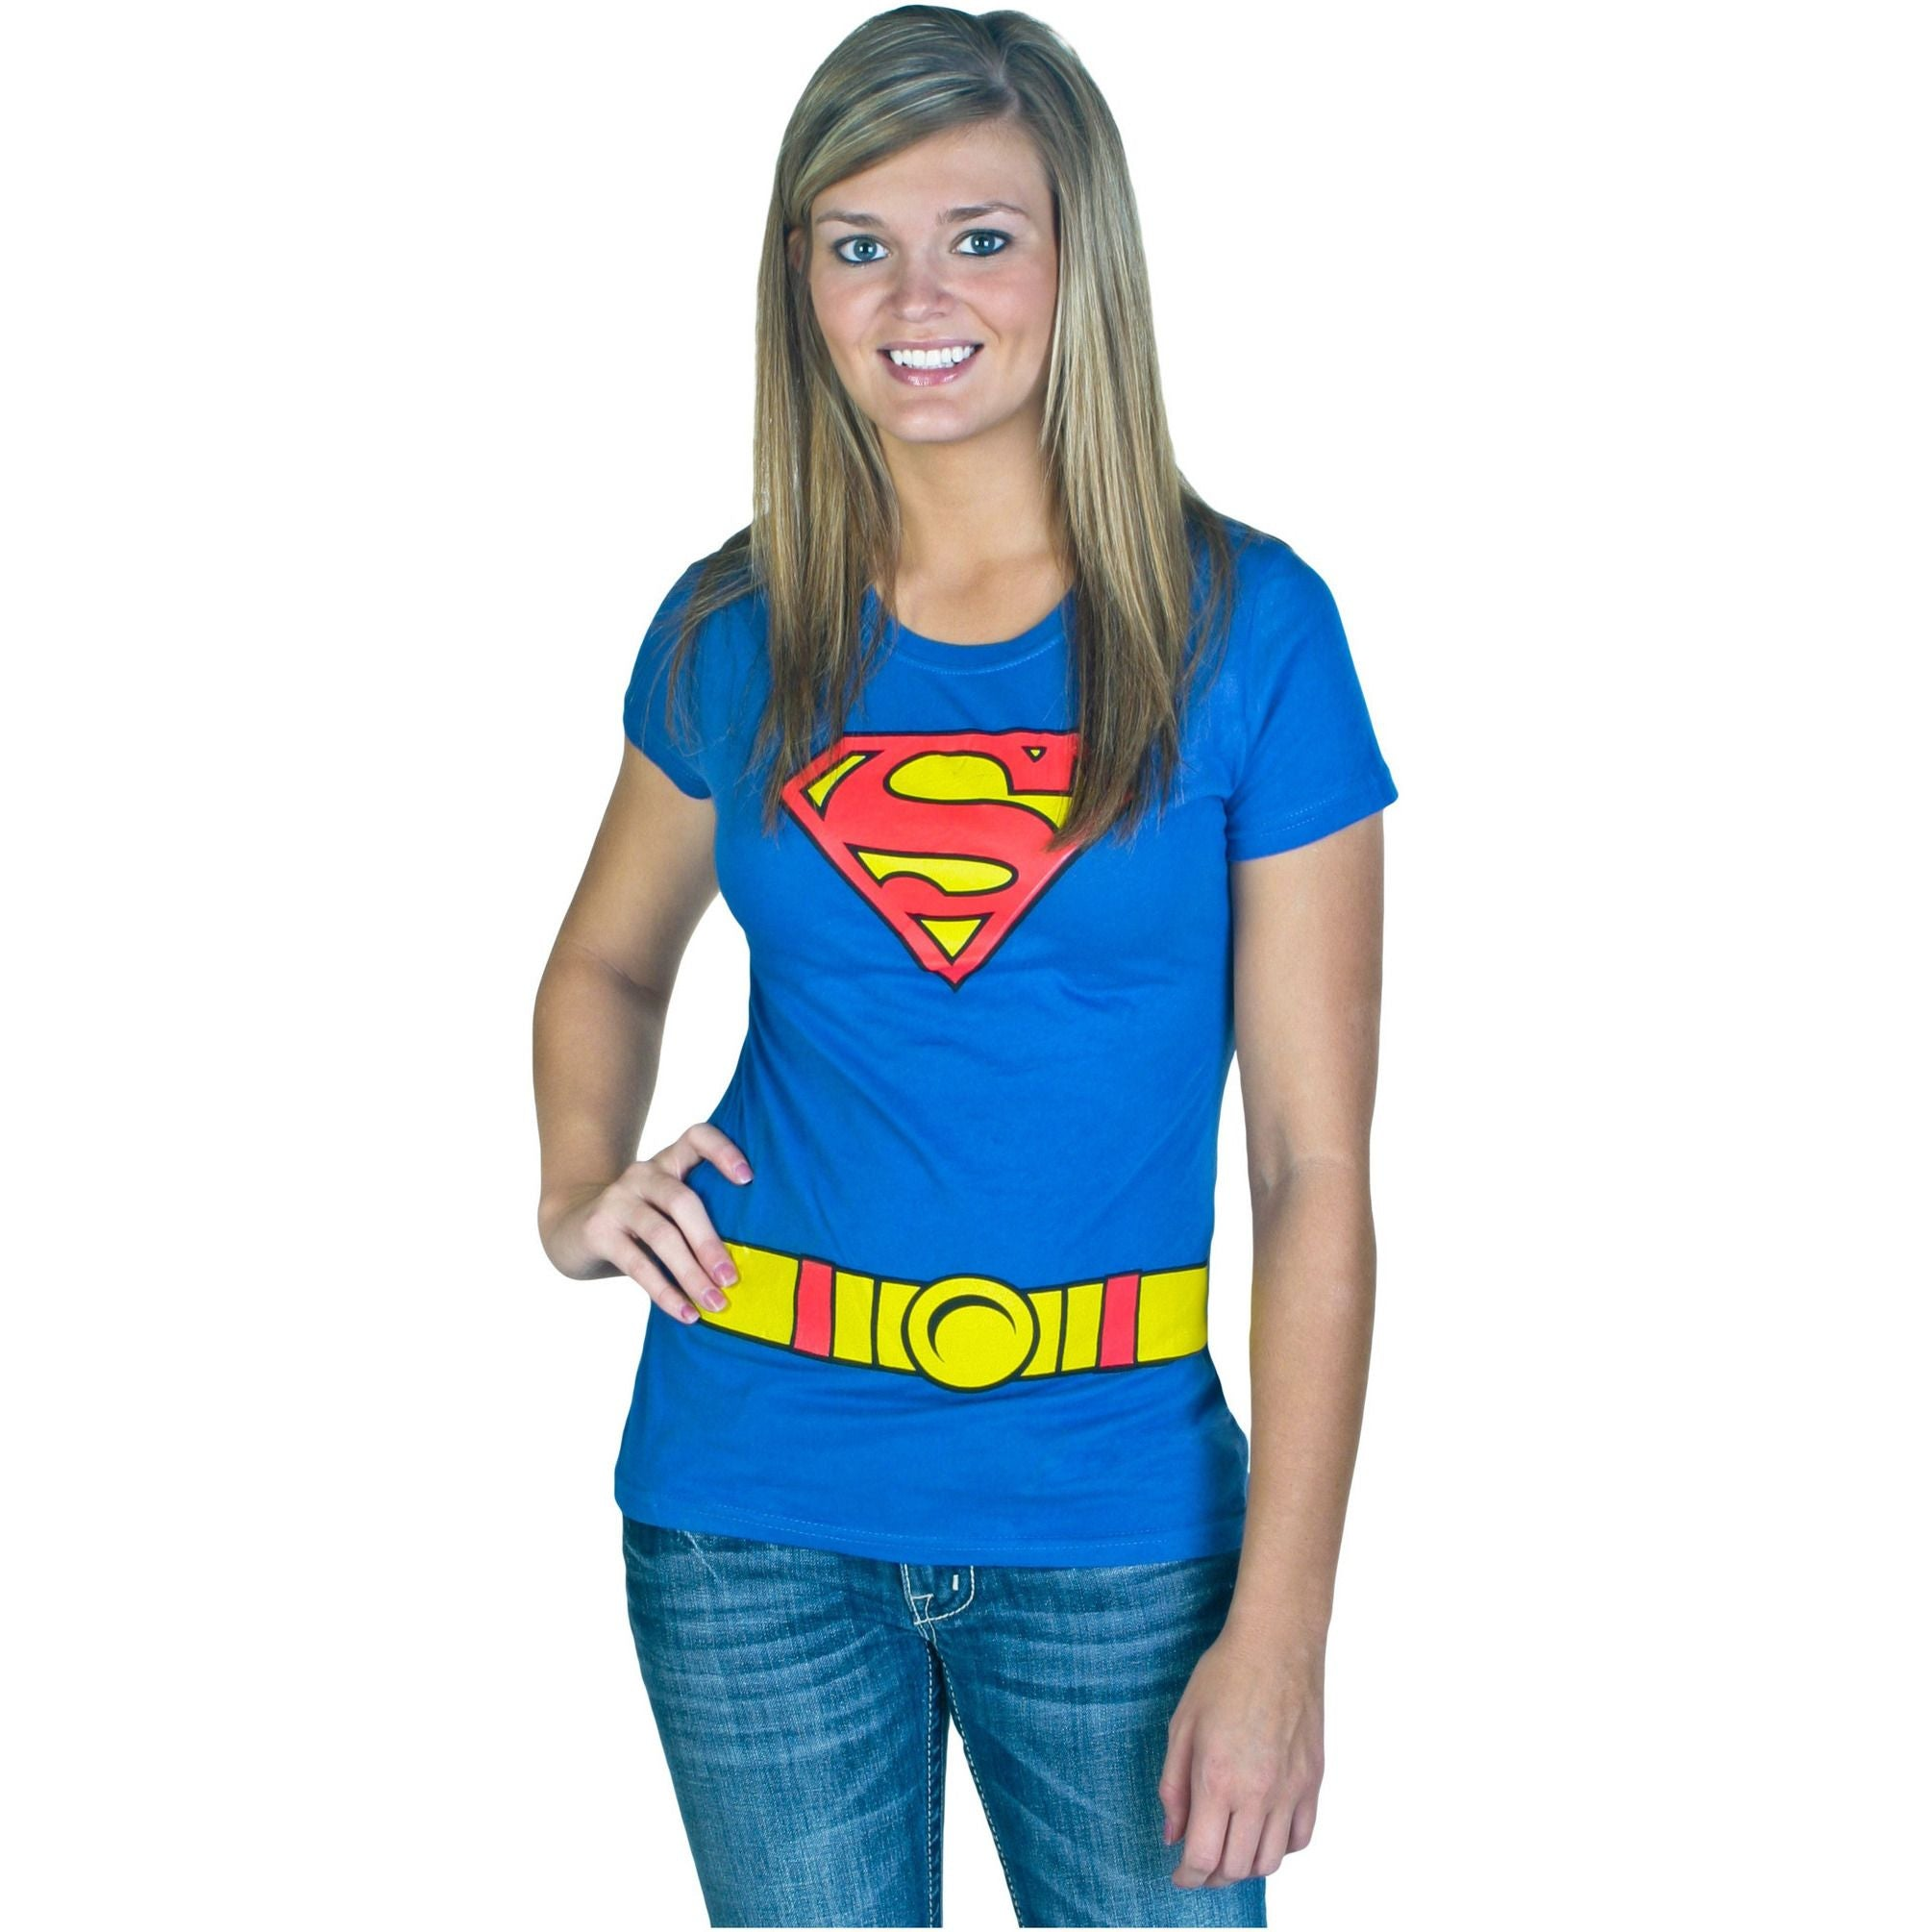 Supergirl Costume Shirt Uncanny!